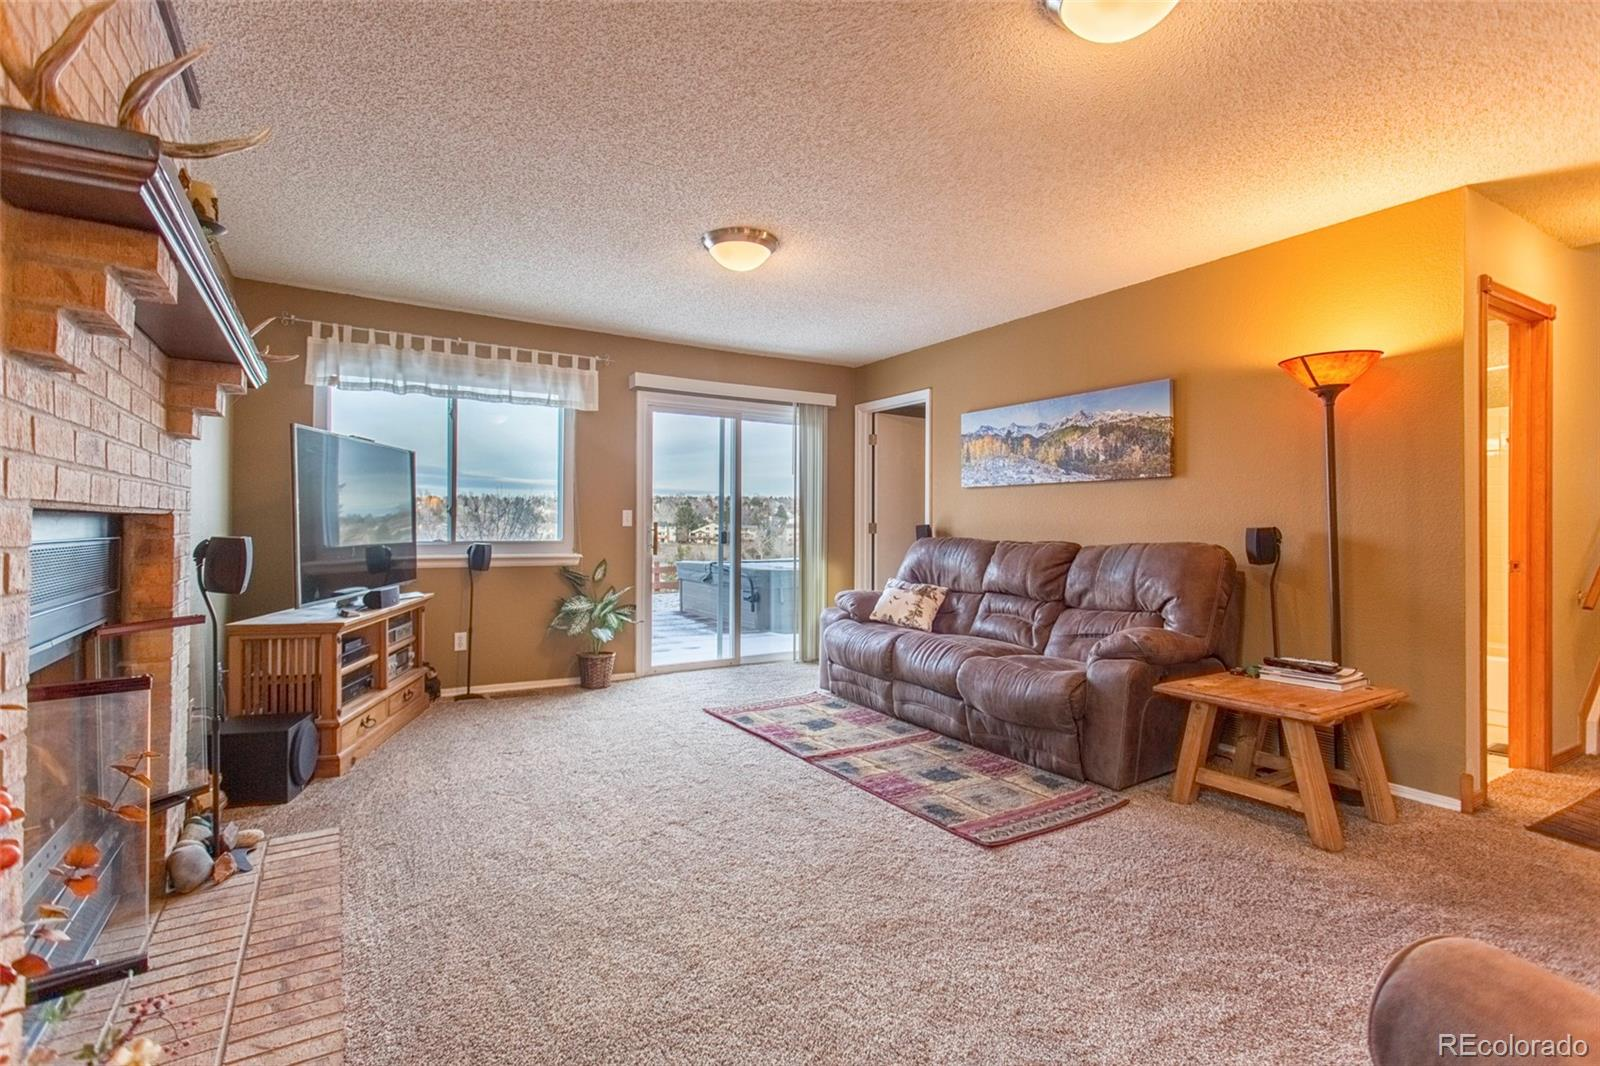 MLS# 8627962 - 11 - 431 Snowy Owl Place, Highlands Ranch, CO 80126